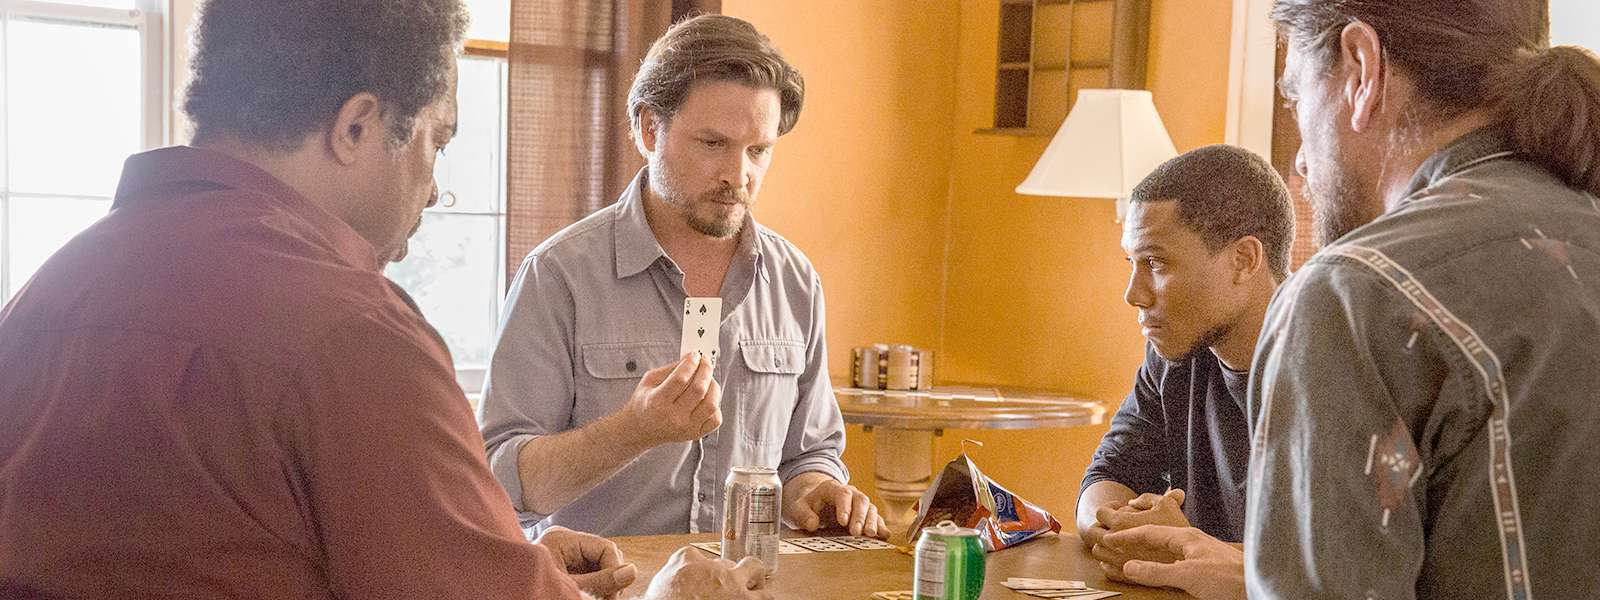 rectify-401-800×600